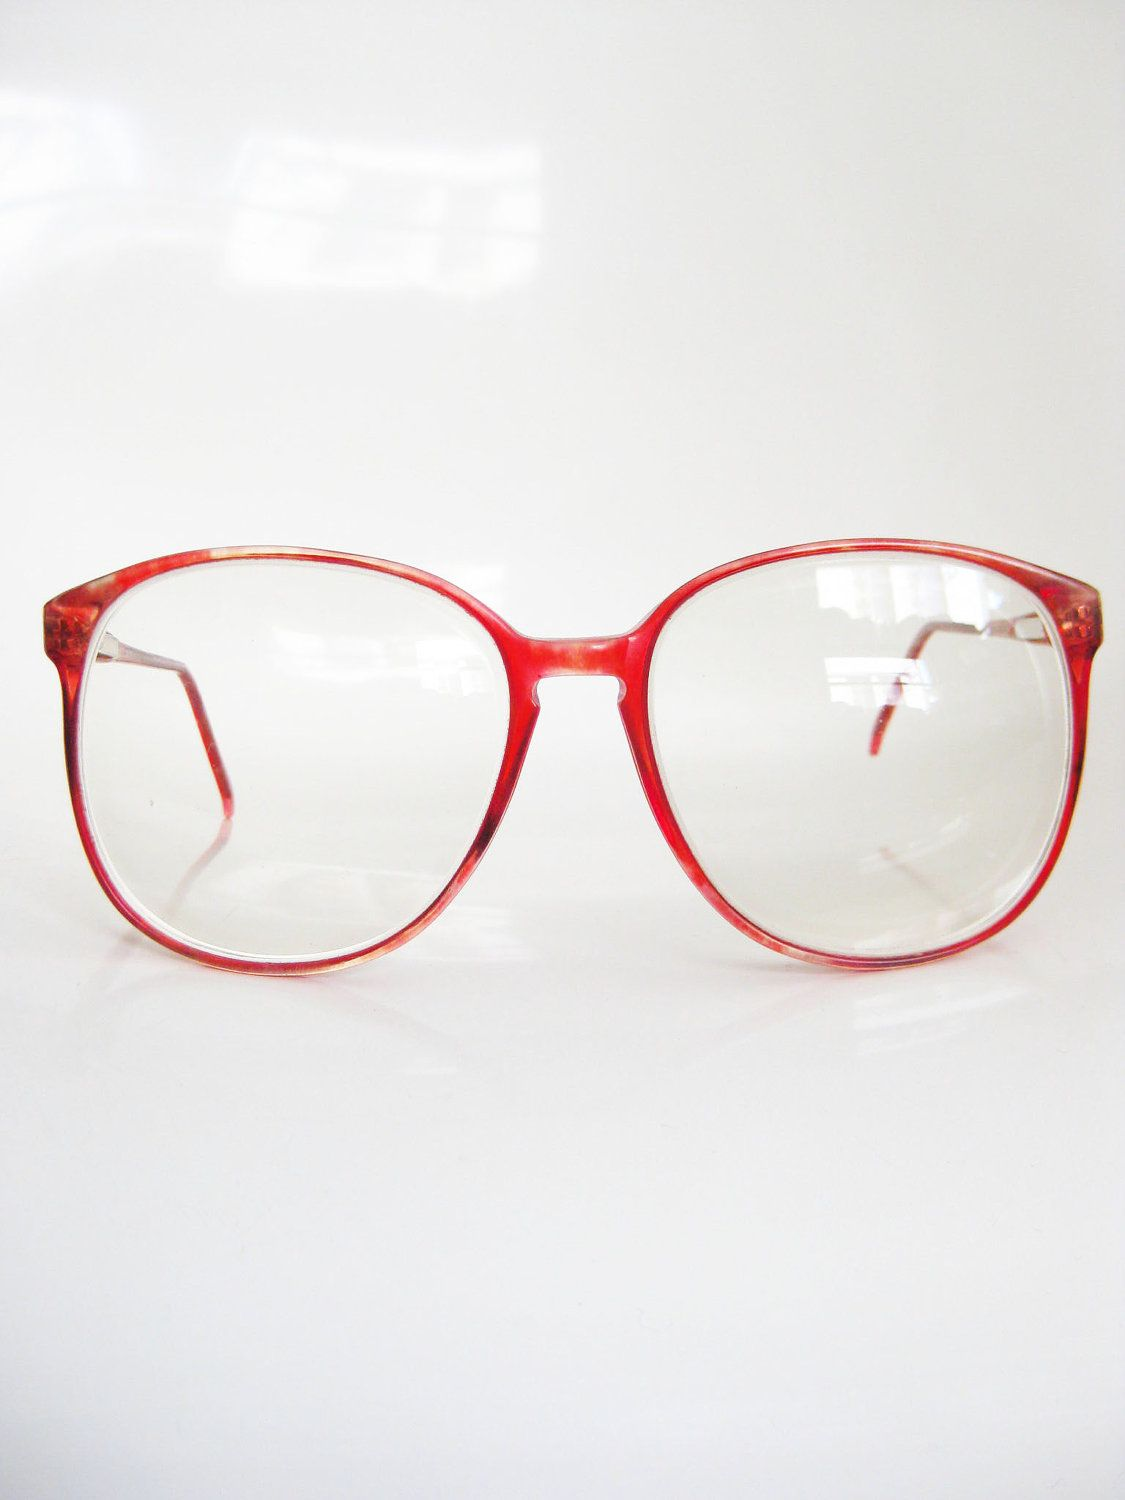 505d186808 Vintage CHERRY RED Glasses Eyeglasses ROUND by OliverandAlexa